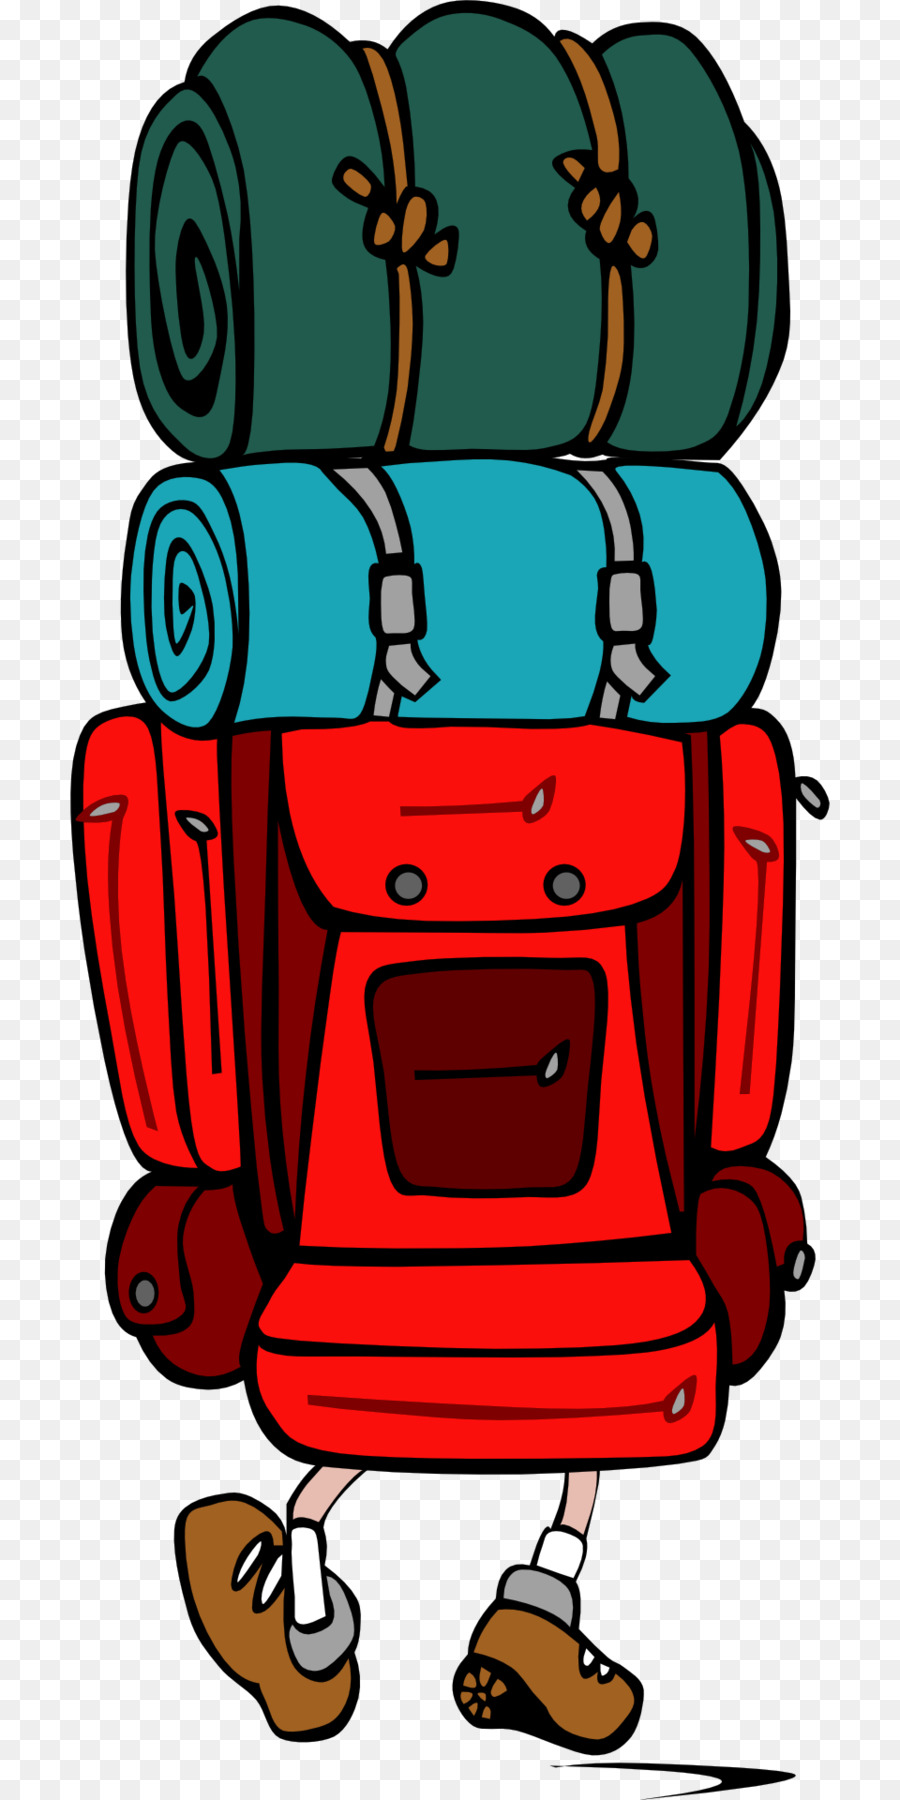 Hiking clipart backpacker. Travel png download free